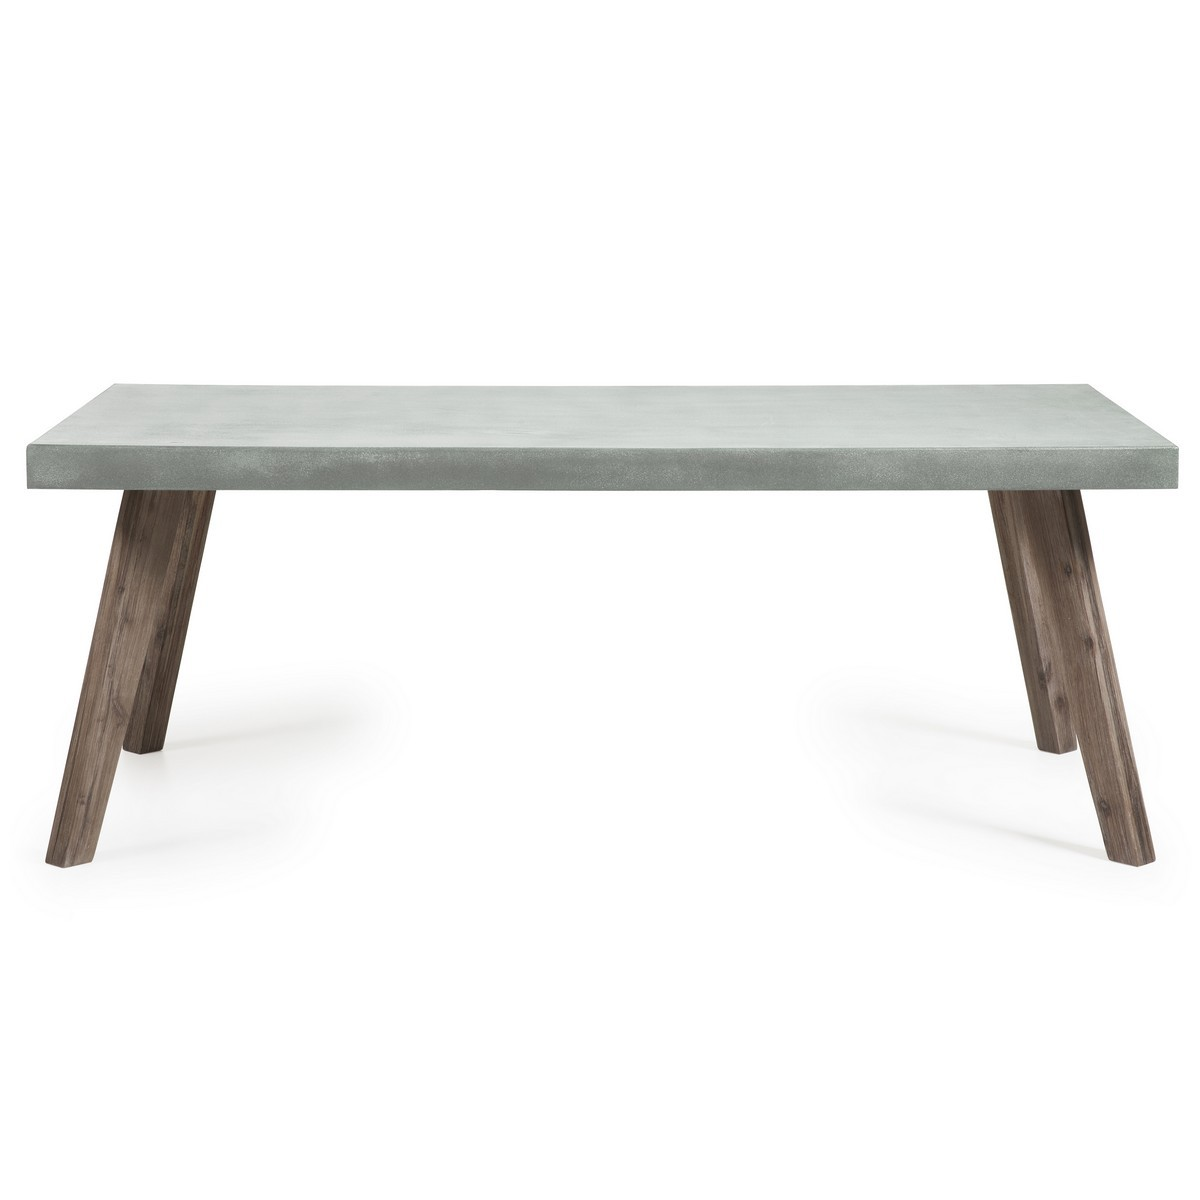 Mavielle Poly Cement & Acacia Timber Indoor / Outdoor Dining Table, 200cm